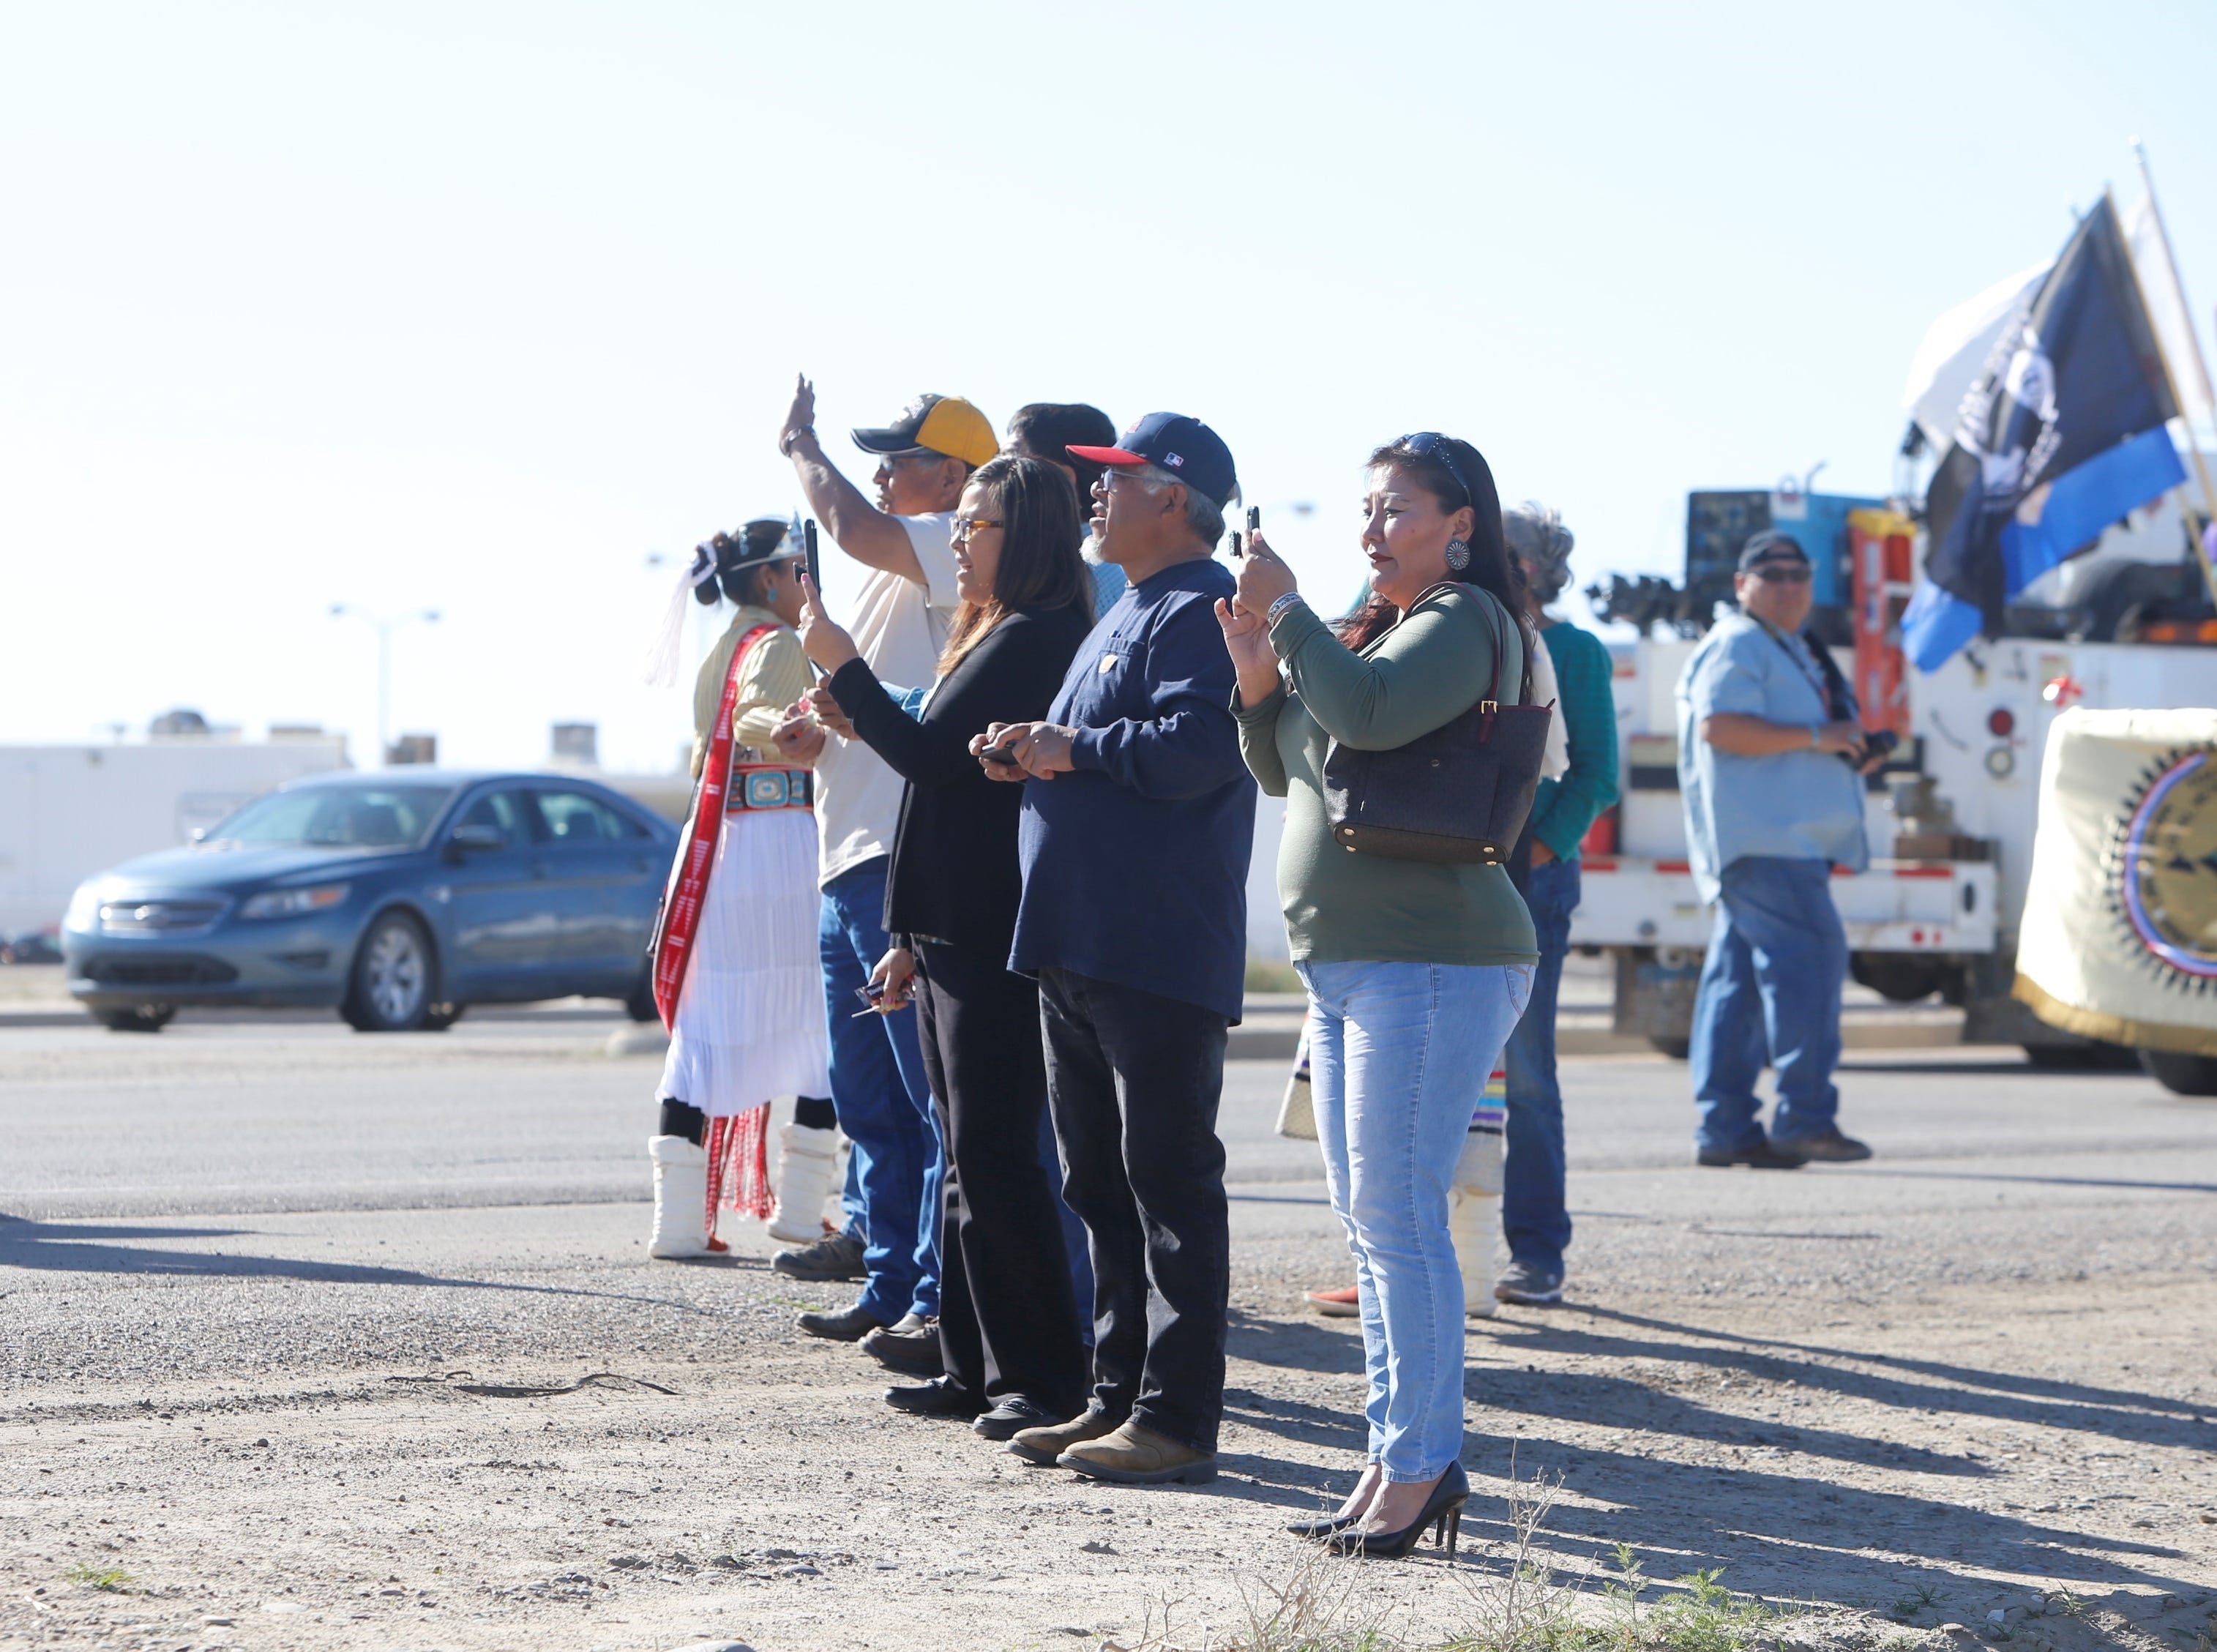 Dozens of spectators came to watch the Vietnam Veterans Day parade in Shiprock on Friday.